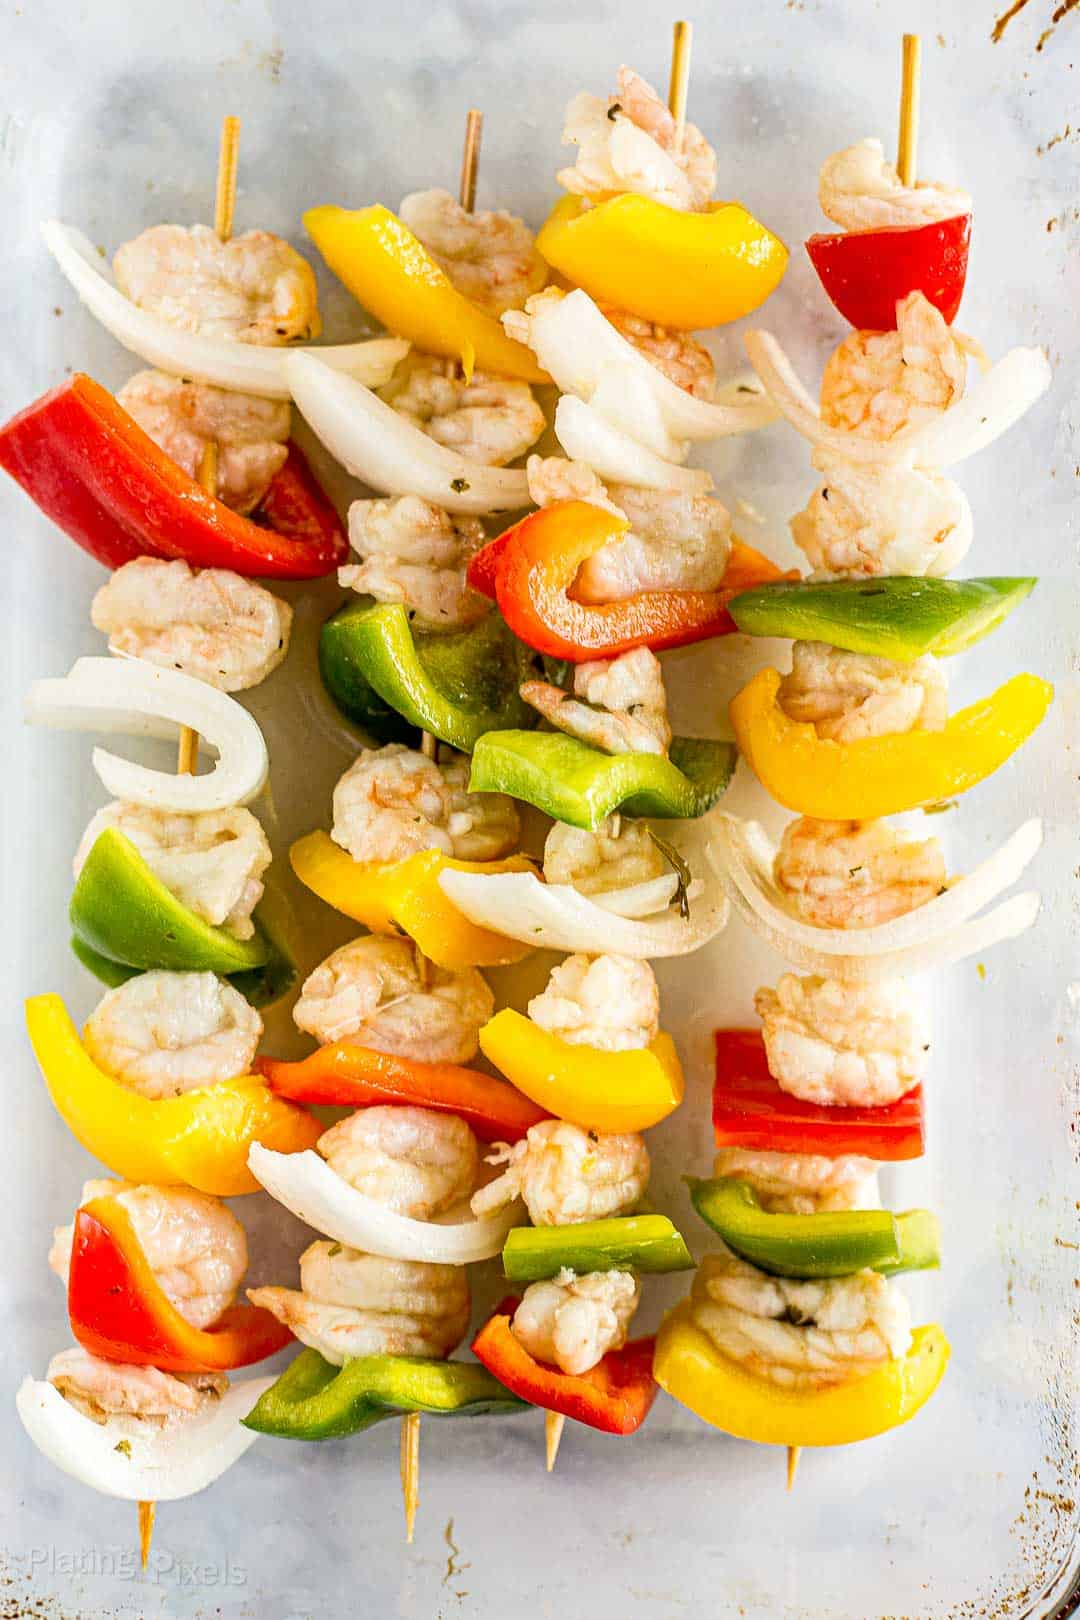 Easy Grilled Shrimp Fajitas Skewers with a delicious homemade fajita marinade that includes lime, soy sauce, red wine vinegar, garlic, jalapenos, and spices with bell peppers and onion. These are bursting with flavor and a wholesome way to enjoy fajitas. #shrimpfajitas #shrimp #grilledfajitas #fajitas